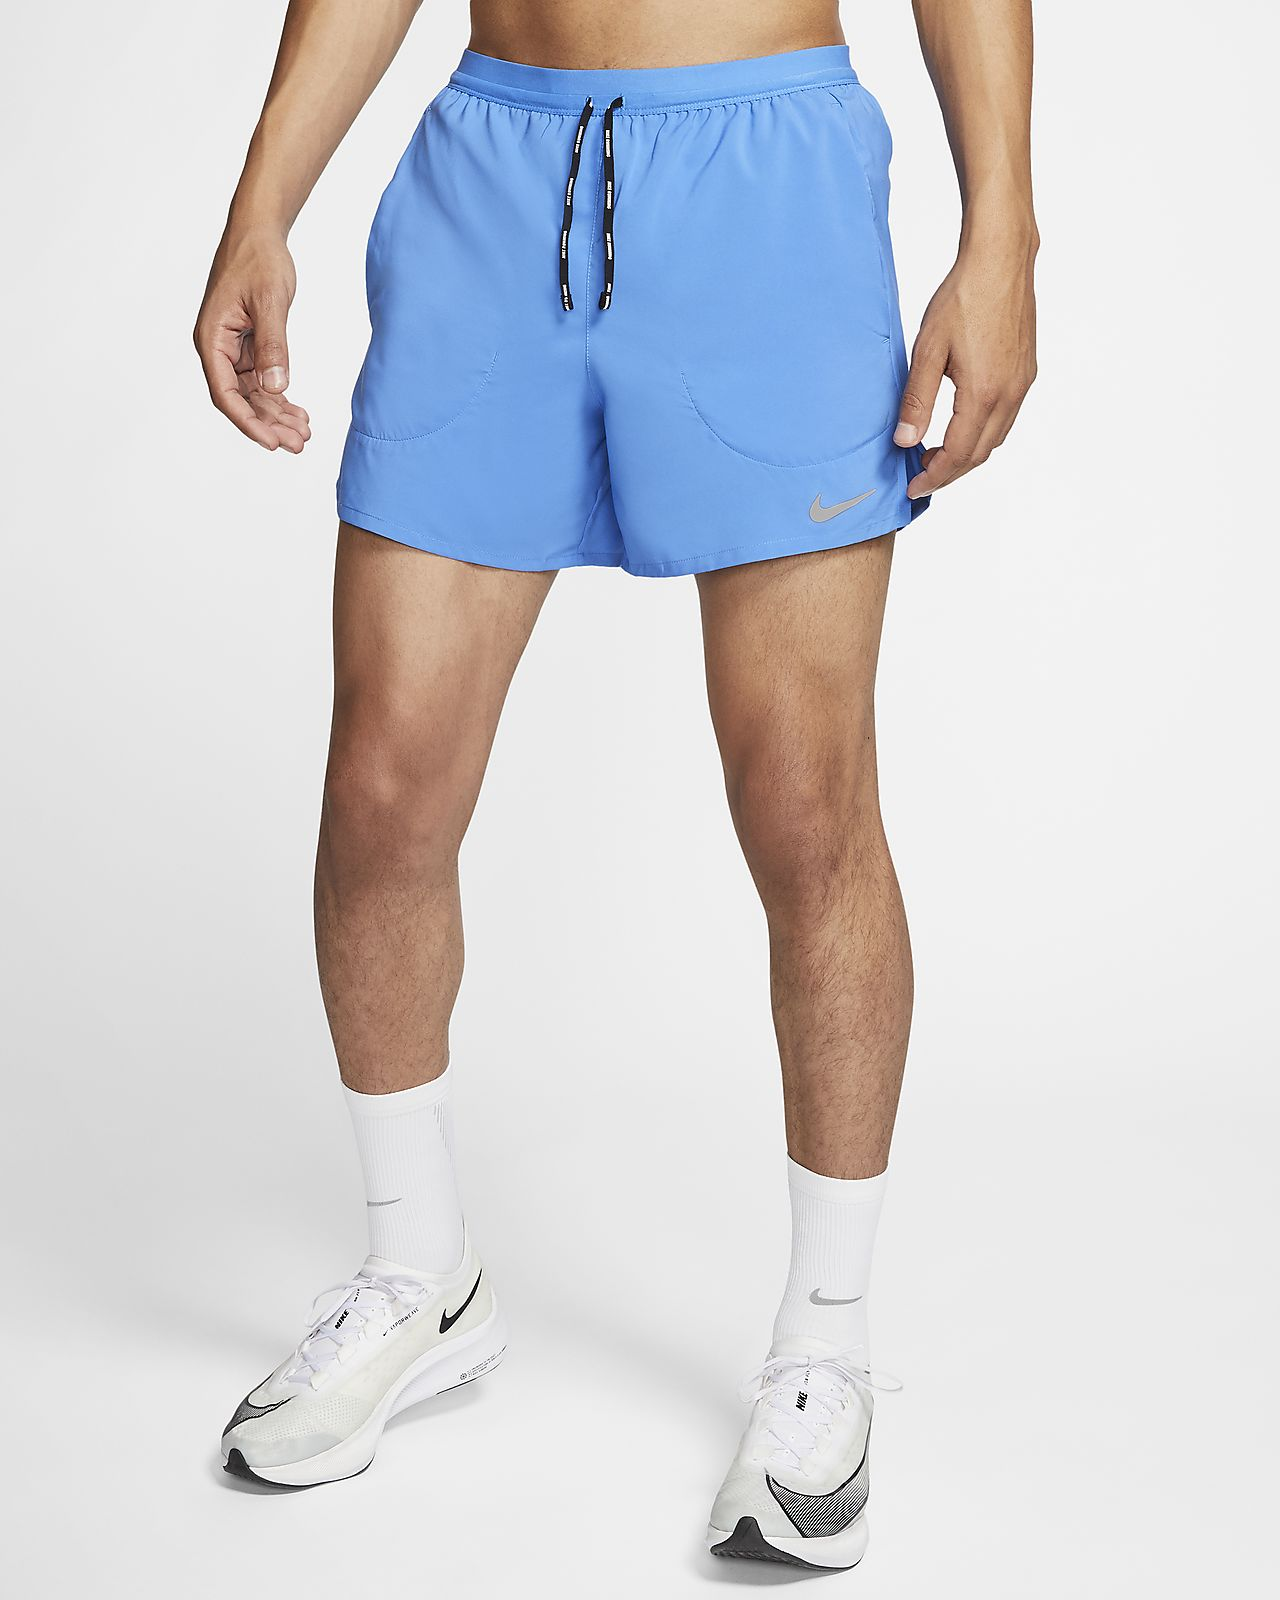 Nike Air Flex Stride Shorts Online